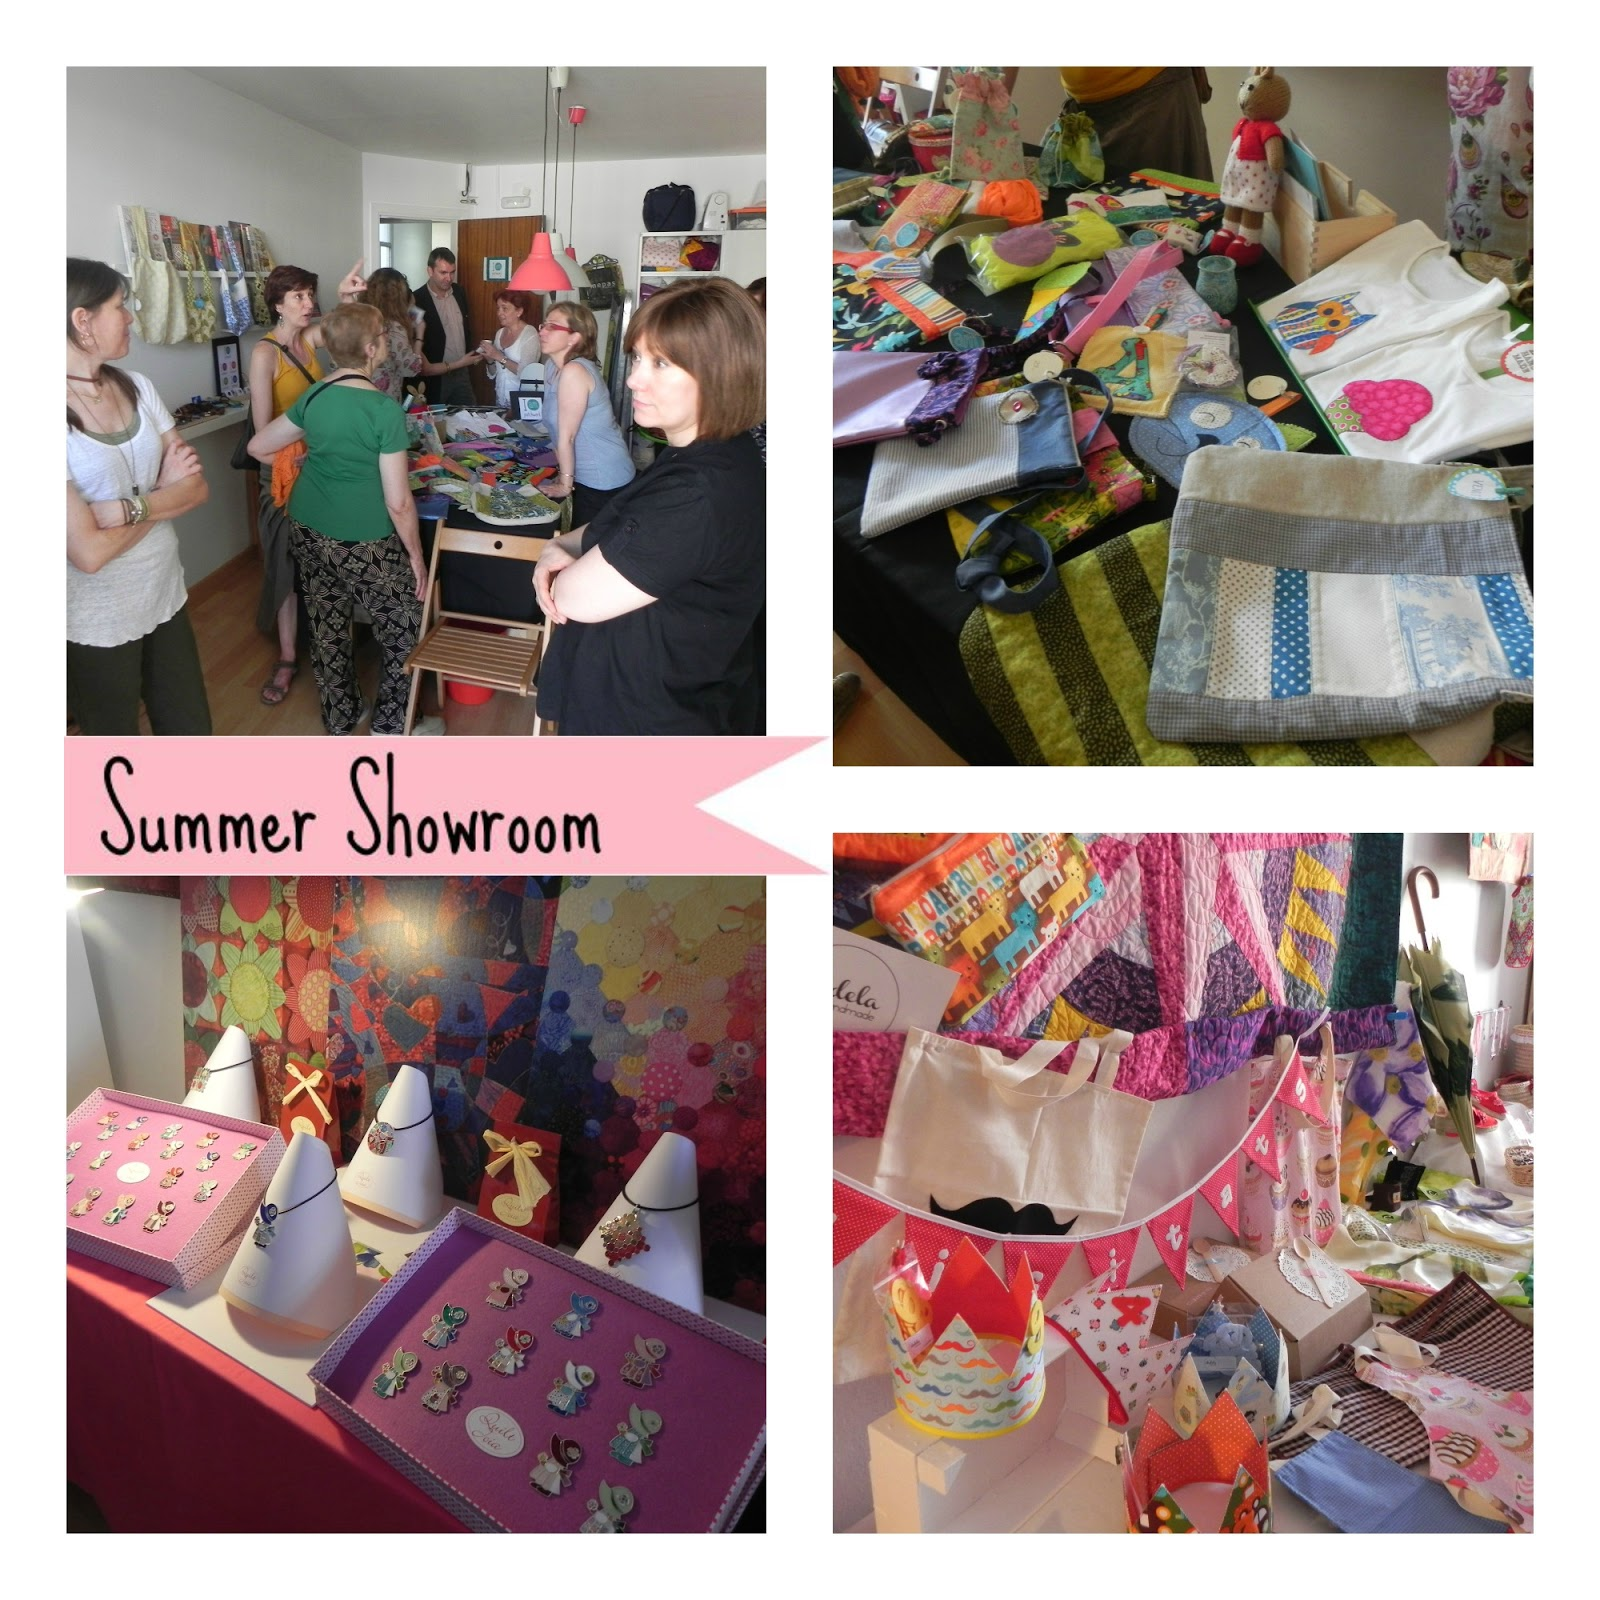 Summer Showroom